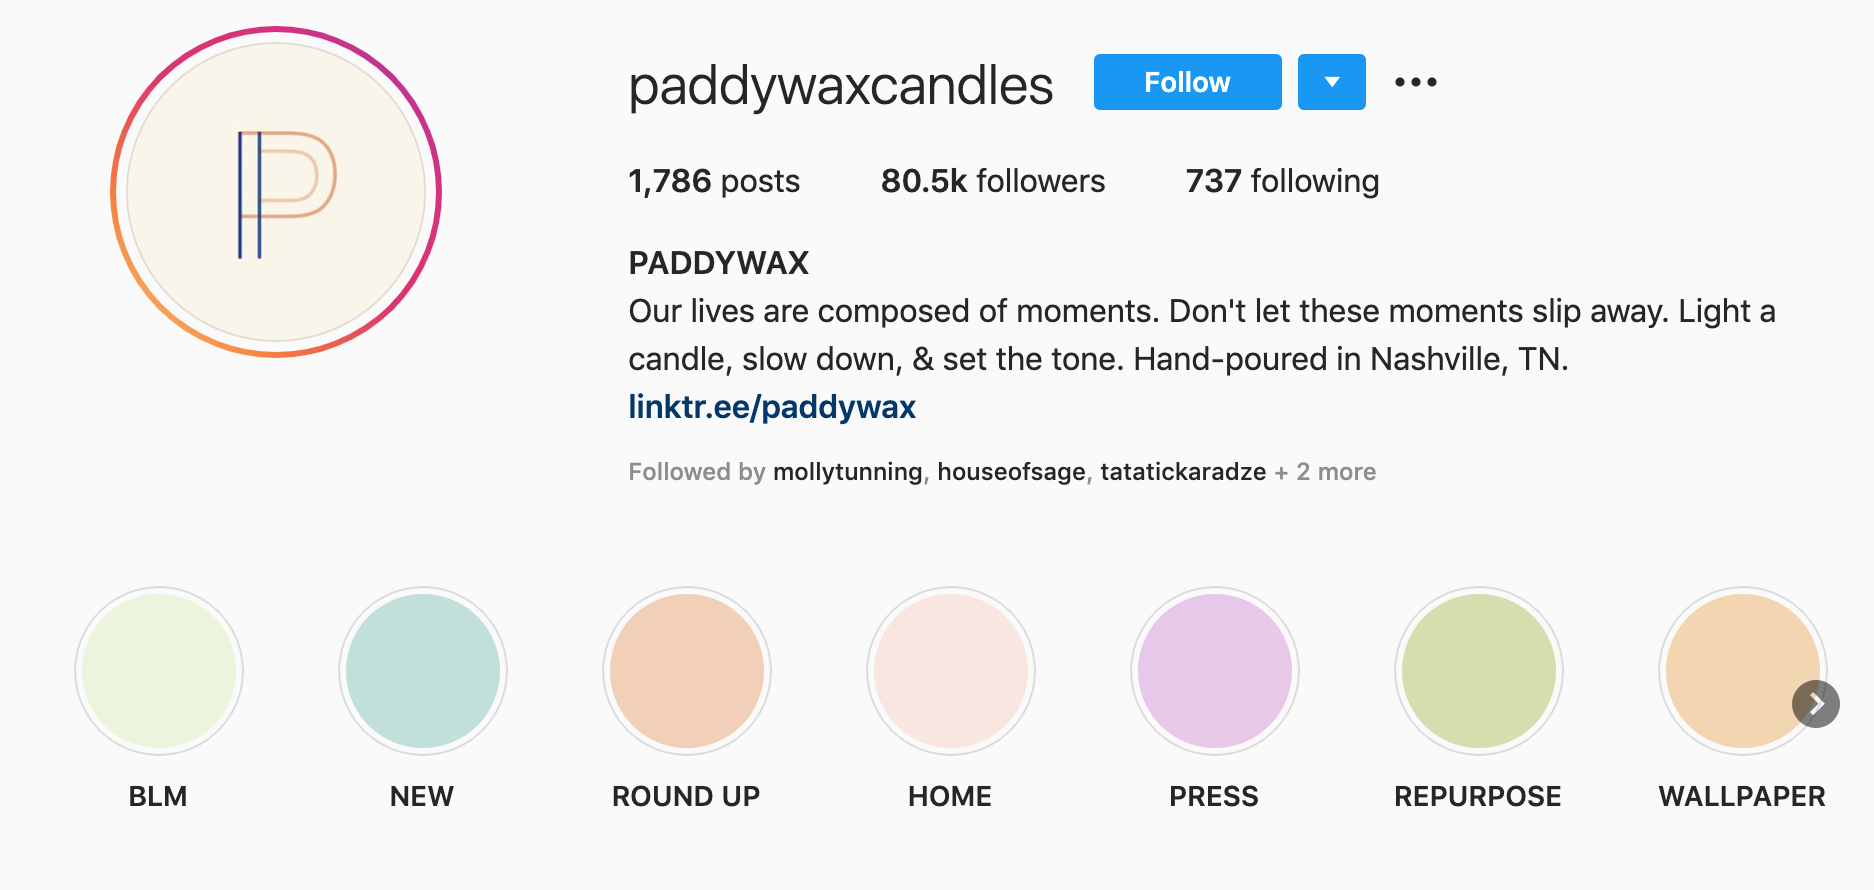 instagram branding - paddywax candle instagram story highlights